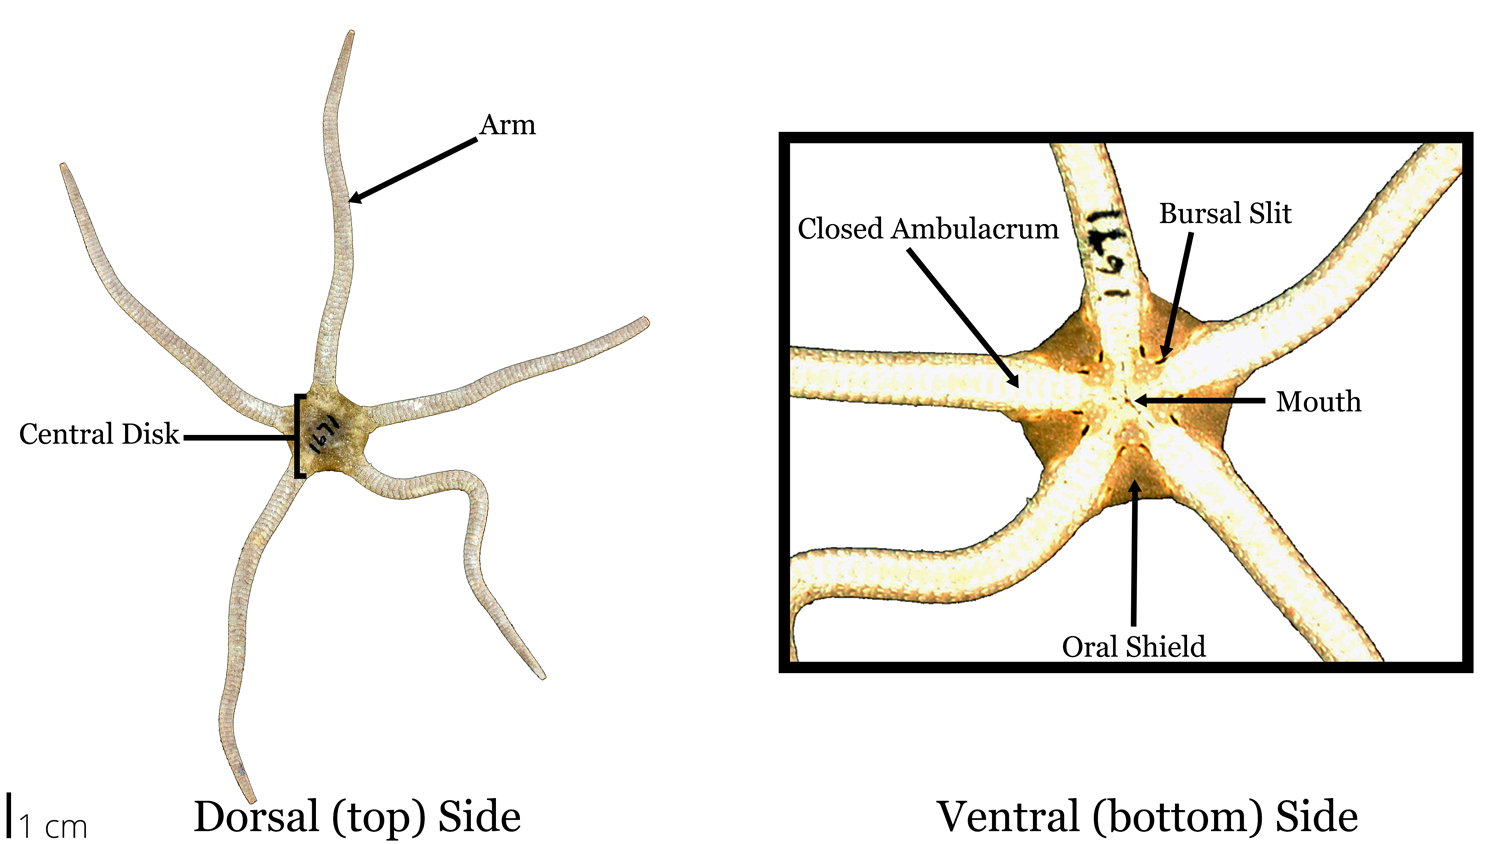 Photograph of a brittle star specimen with labelled morphology